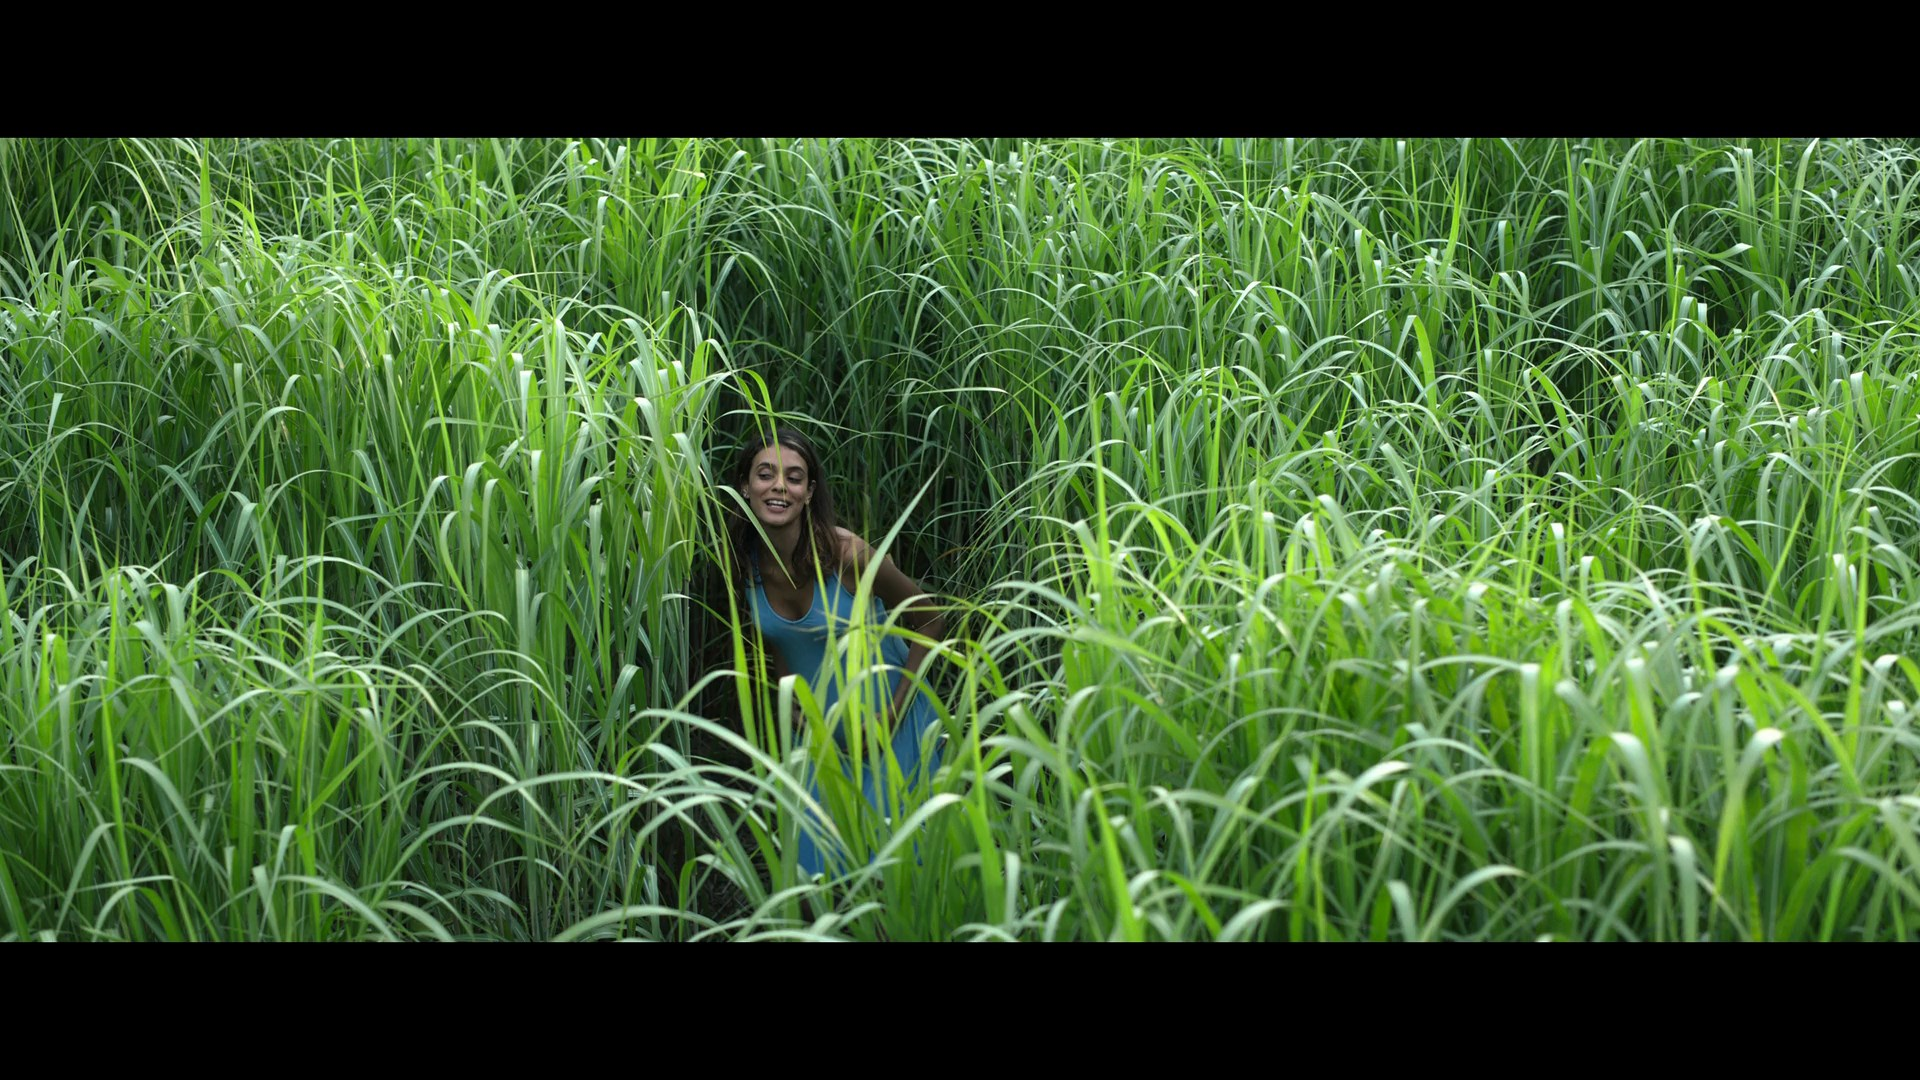 [Resim: in.the.tall.grass.201uhk28.jpg]